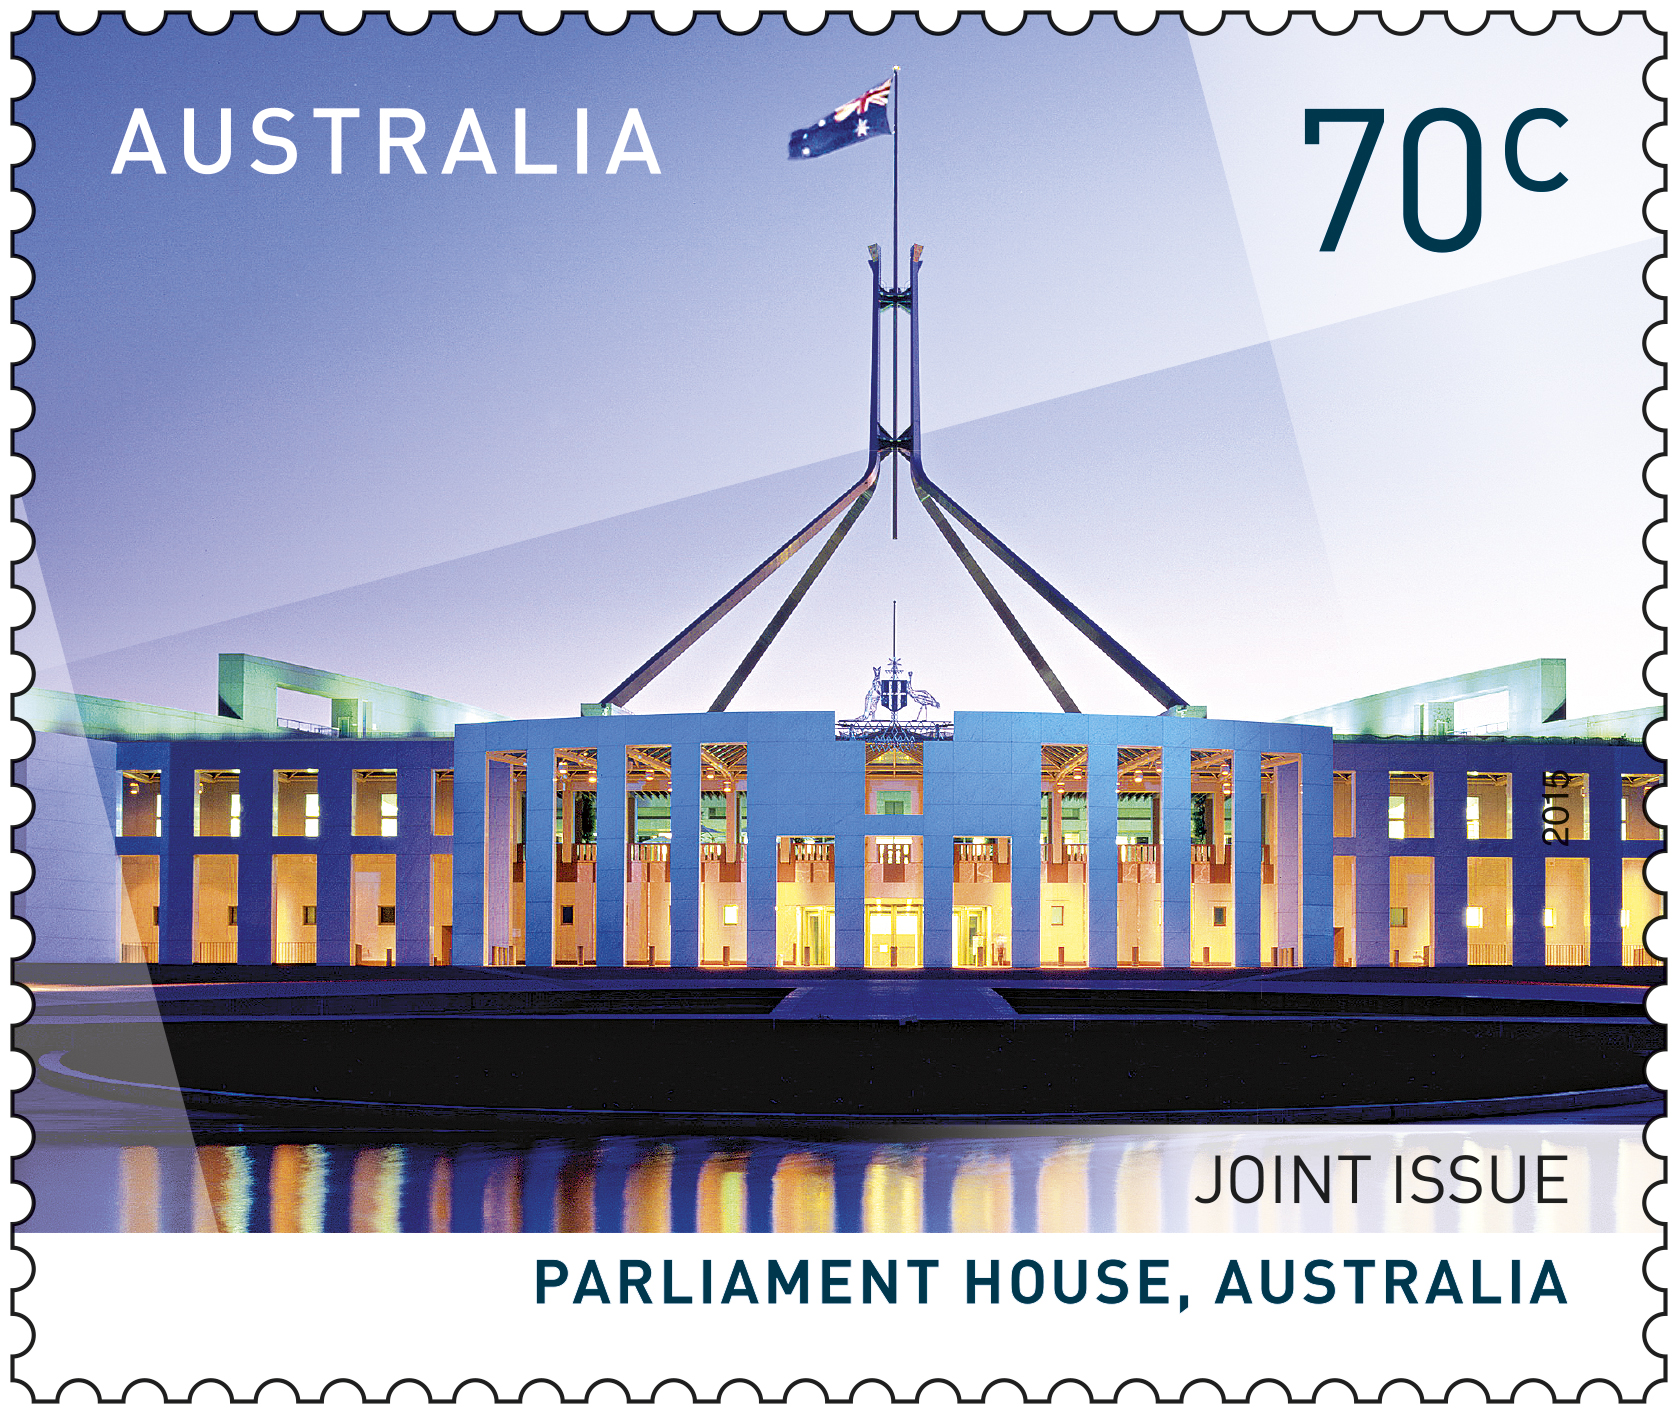 Australia, New Zealand and Singapore acknowledged in new joint stamp issue